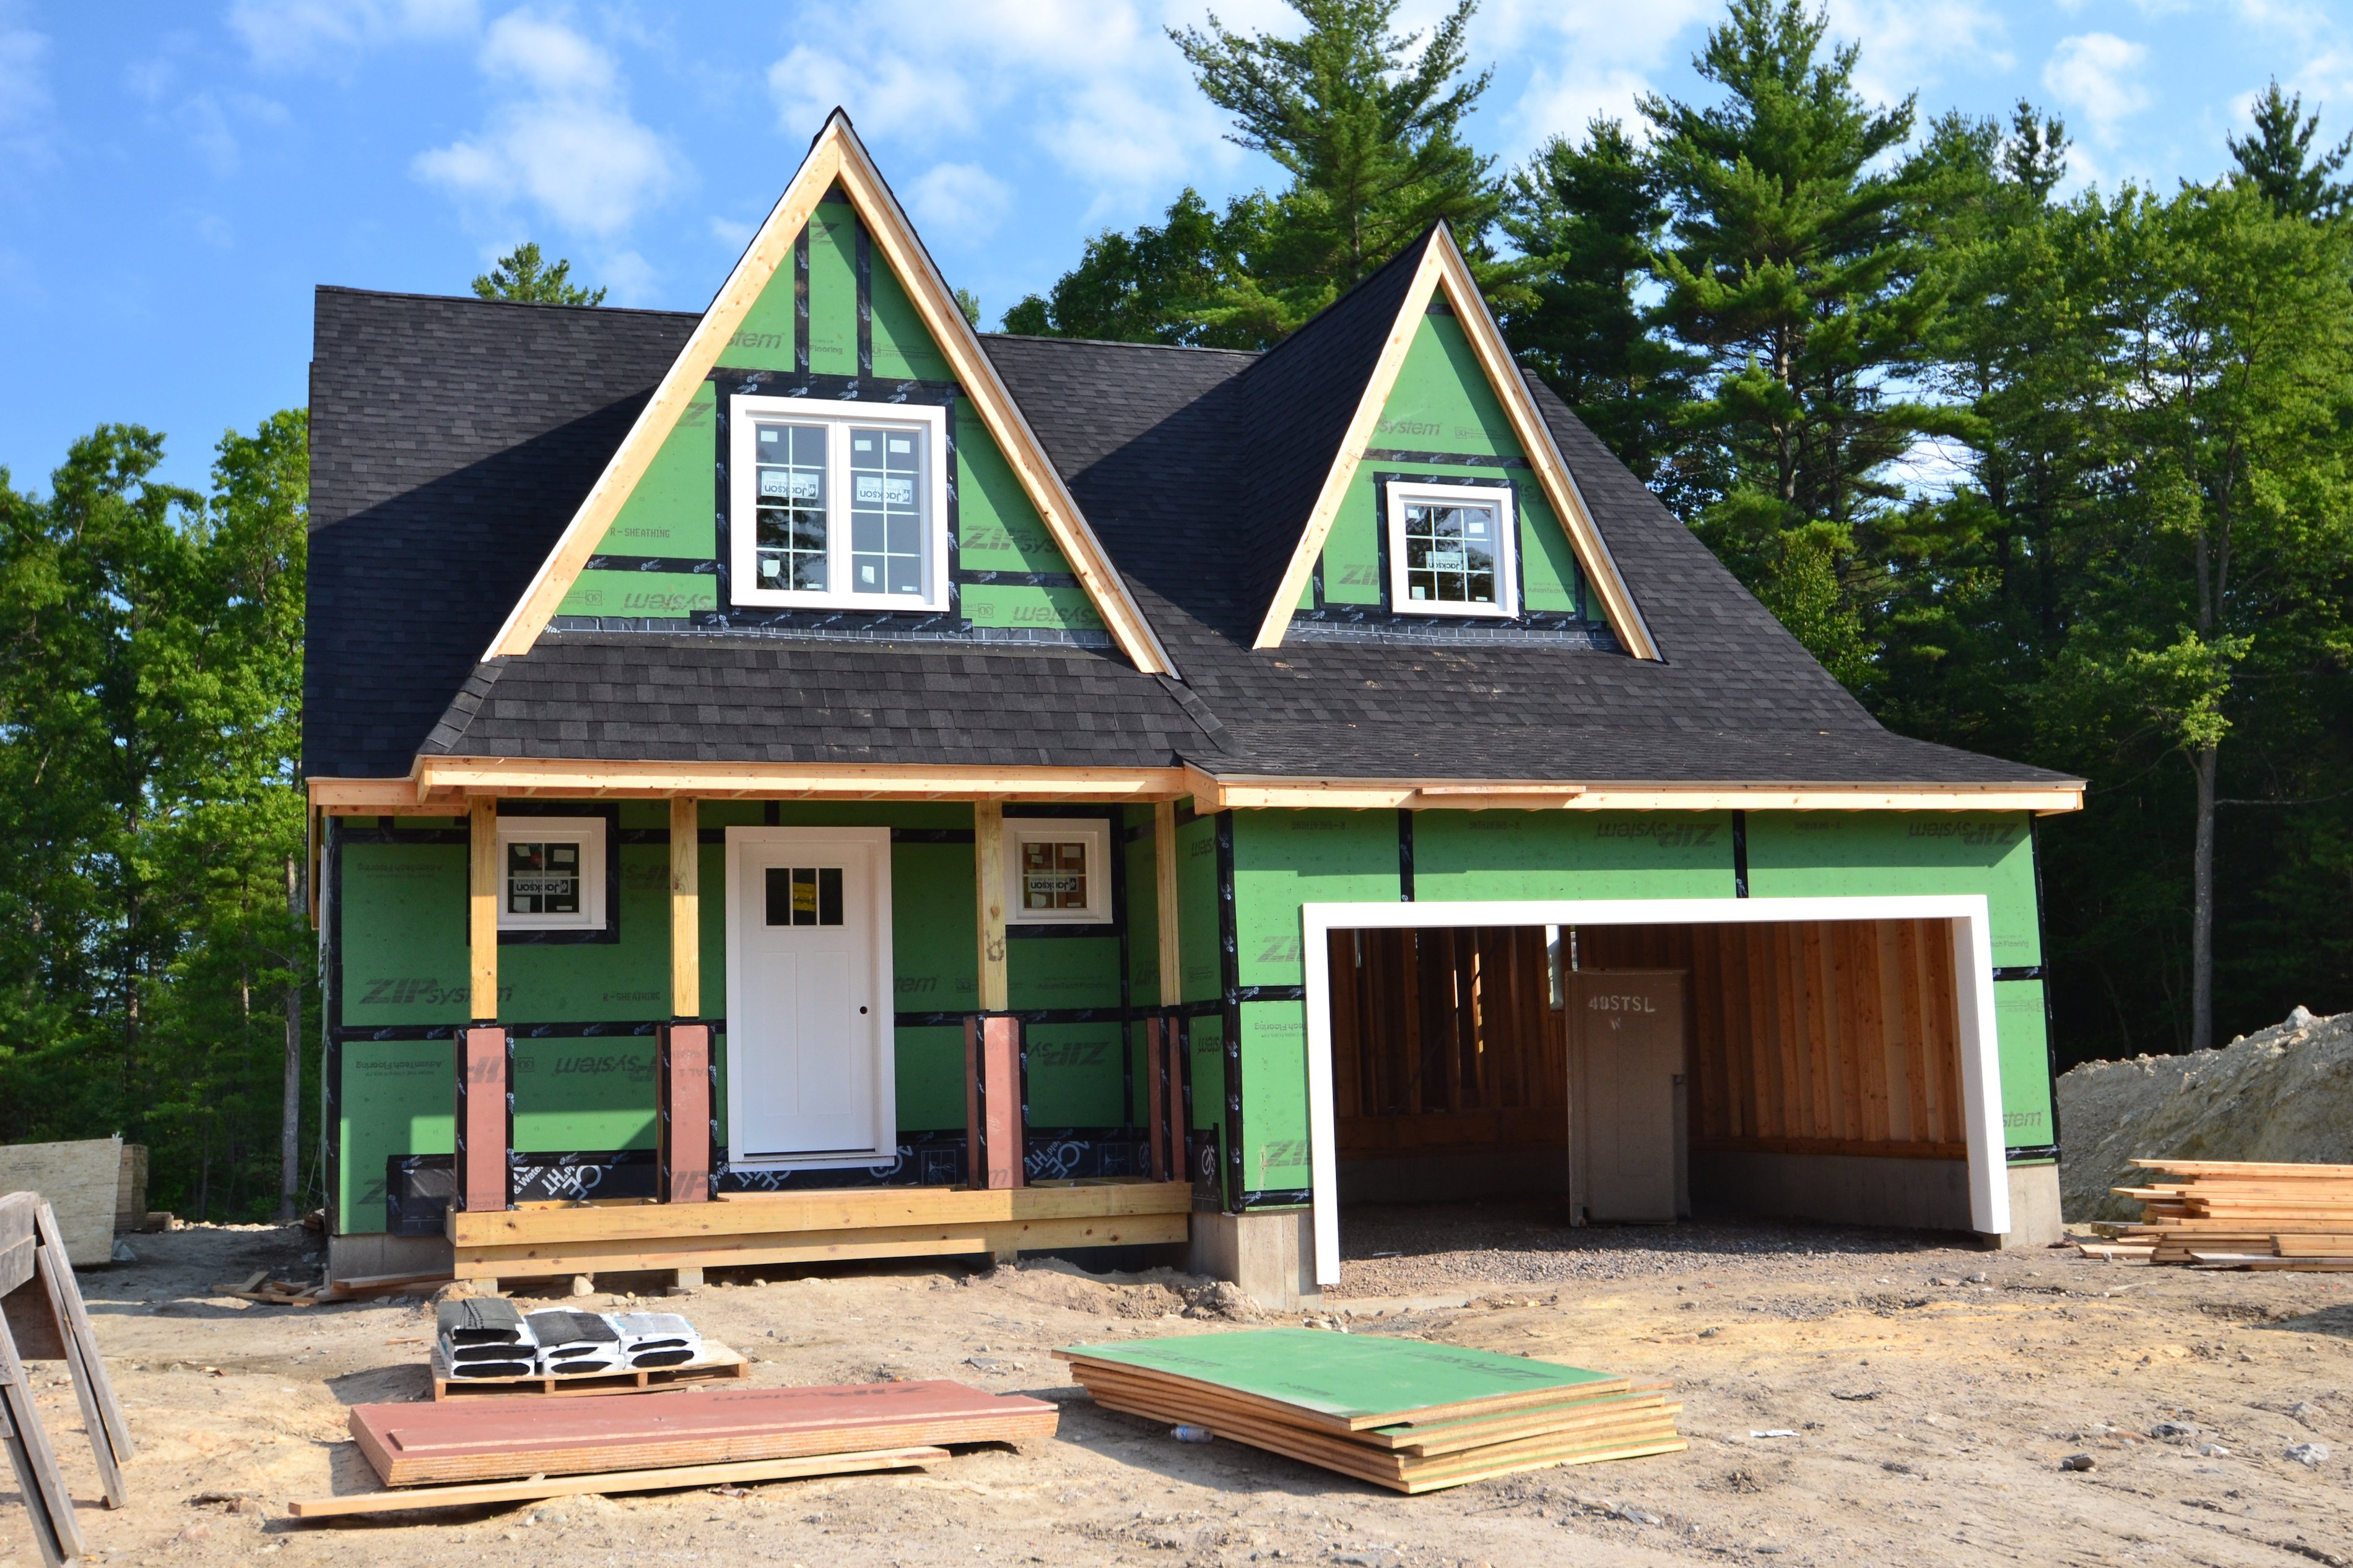 4 Reasons New Home Construction Costs Are Rising